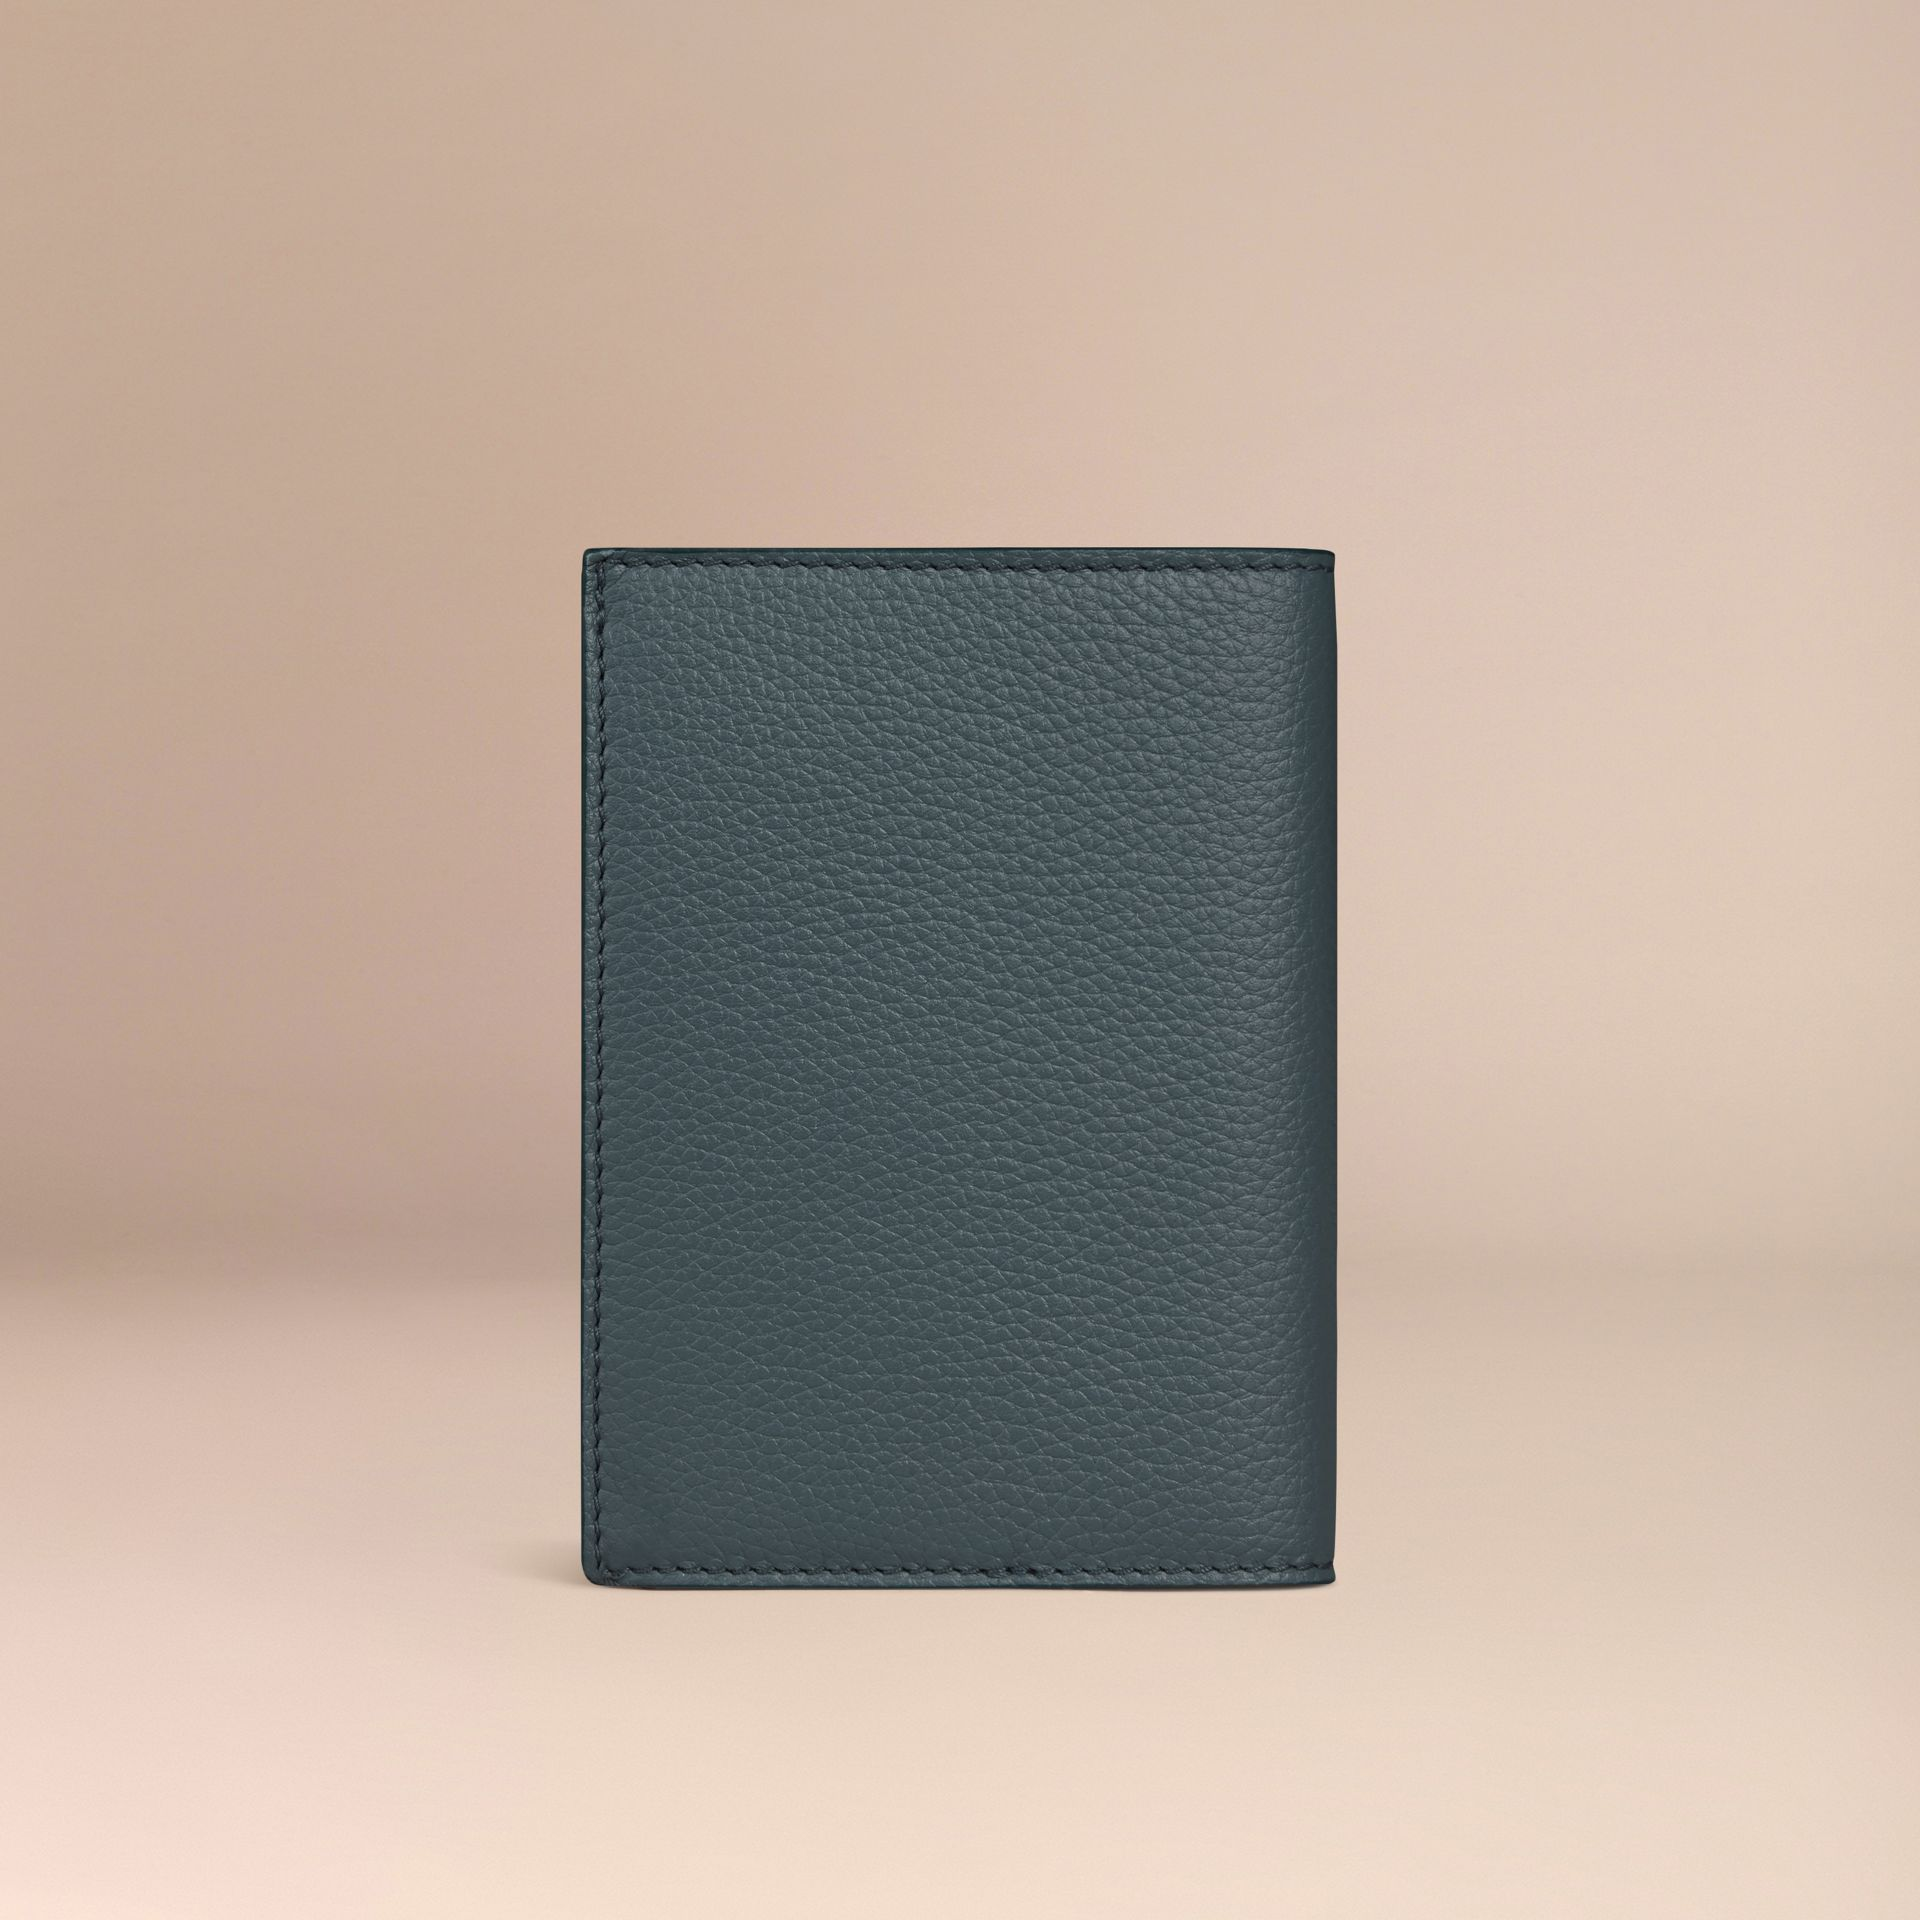 Grainy Leather Passport Cover in Dusty Teal | Burberry Hong Kong - gallery image 3